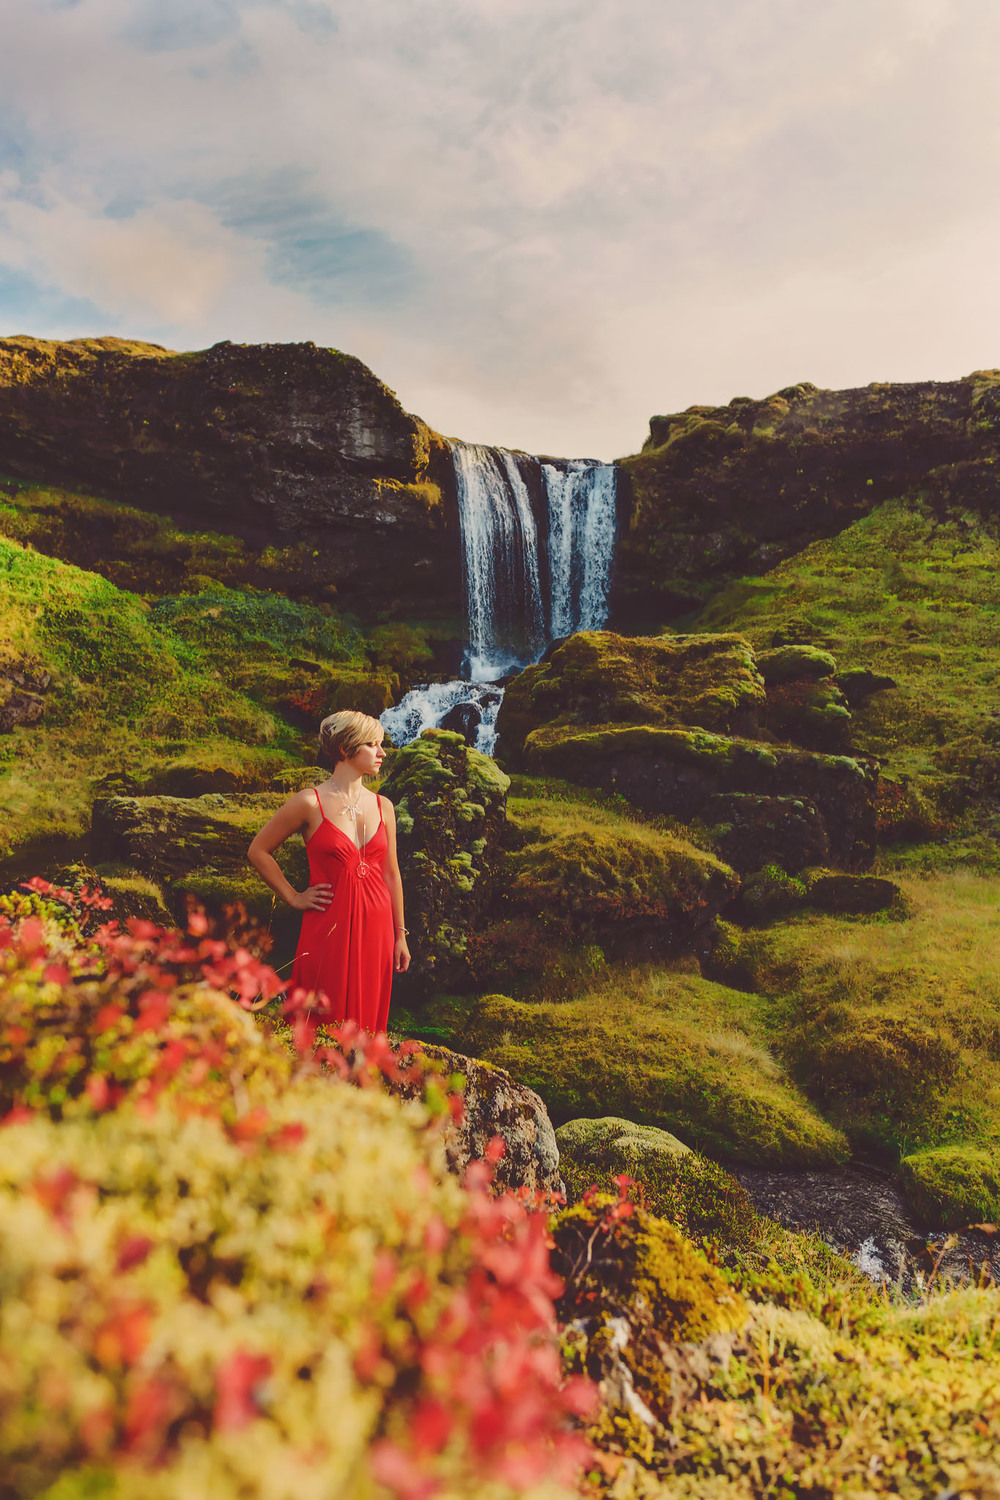 red dress project, iceland, jennifer picard photography and zen thinking collaboration, fine art portraiture